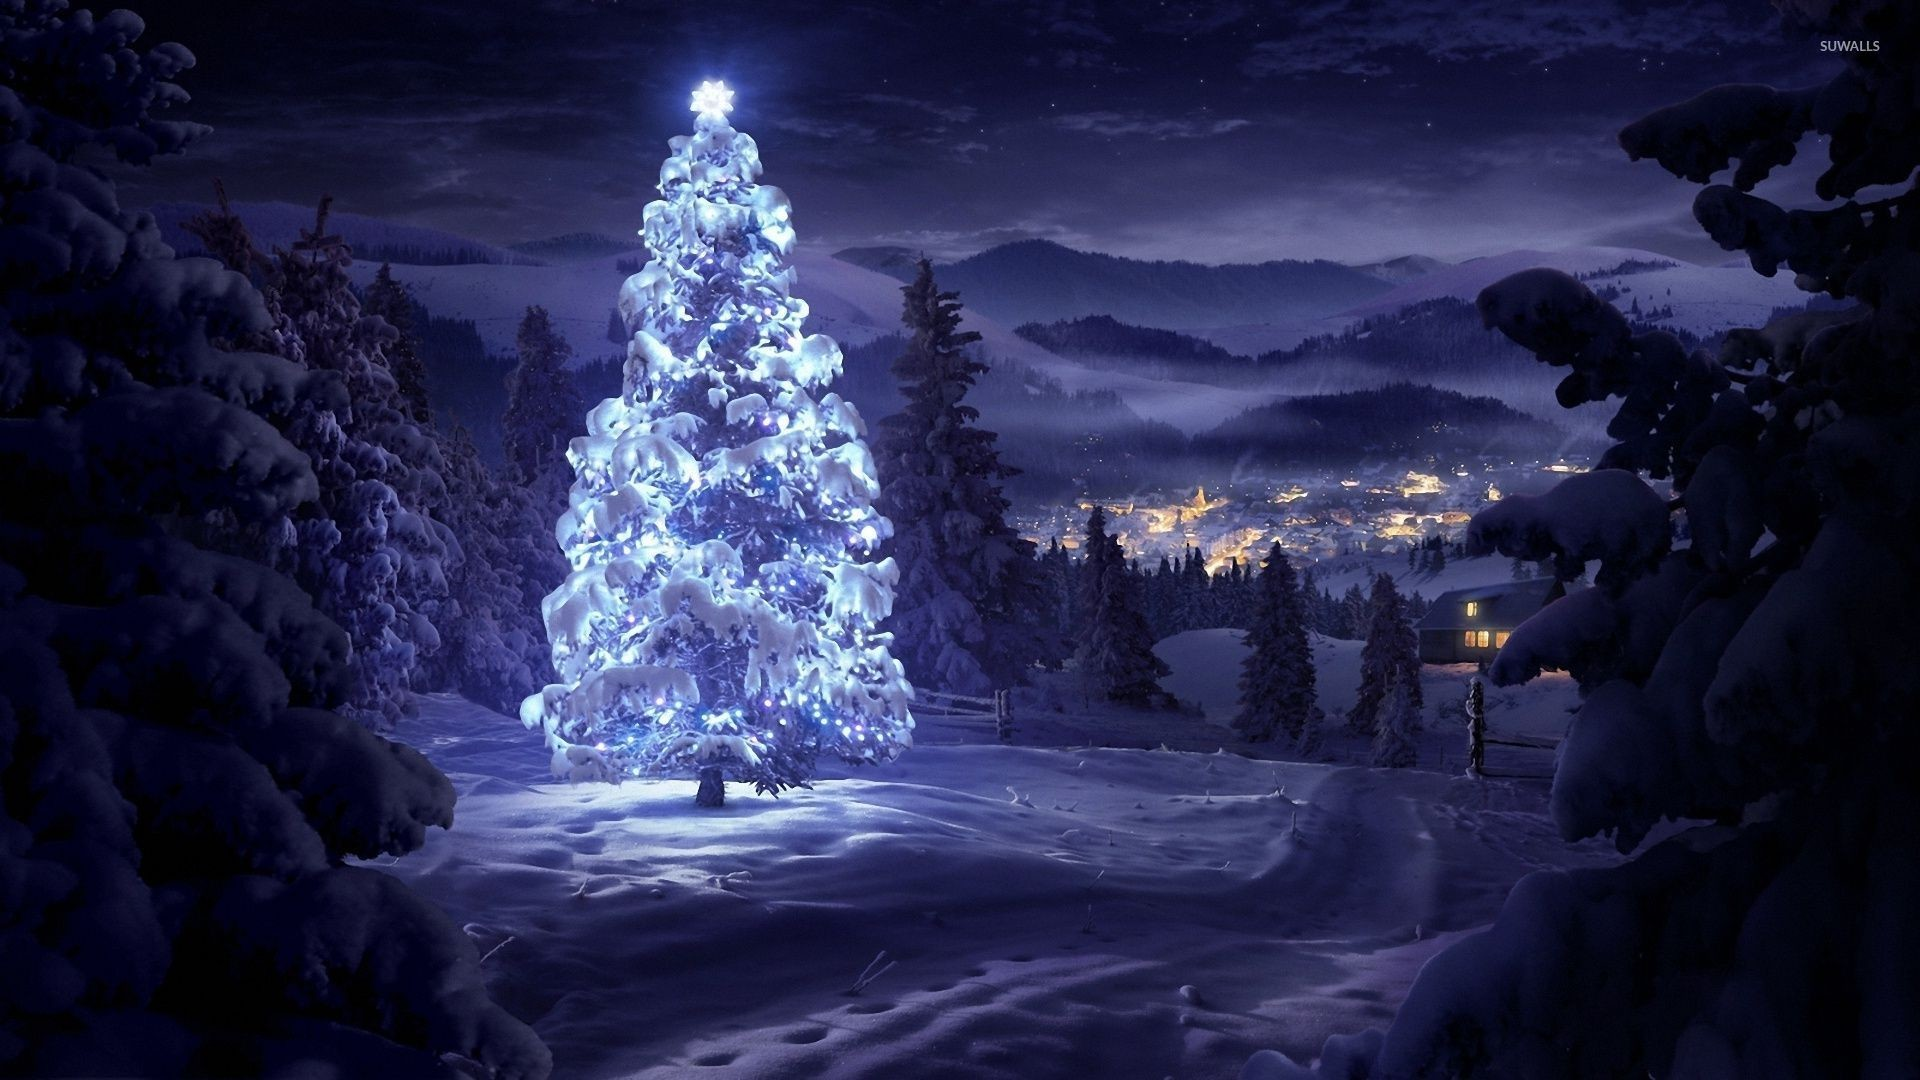 Res: 1920x1080, Bright star on top of a beautiful snowy tree in the forest wallpaper ·  Holidays · Christmas · Winter ...